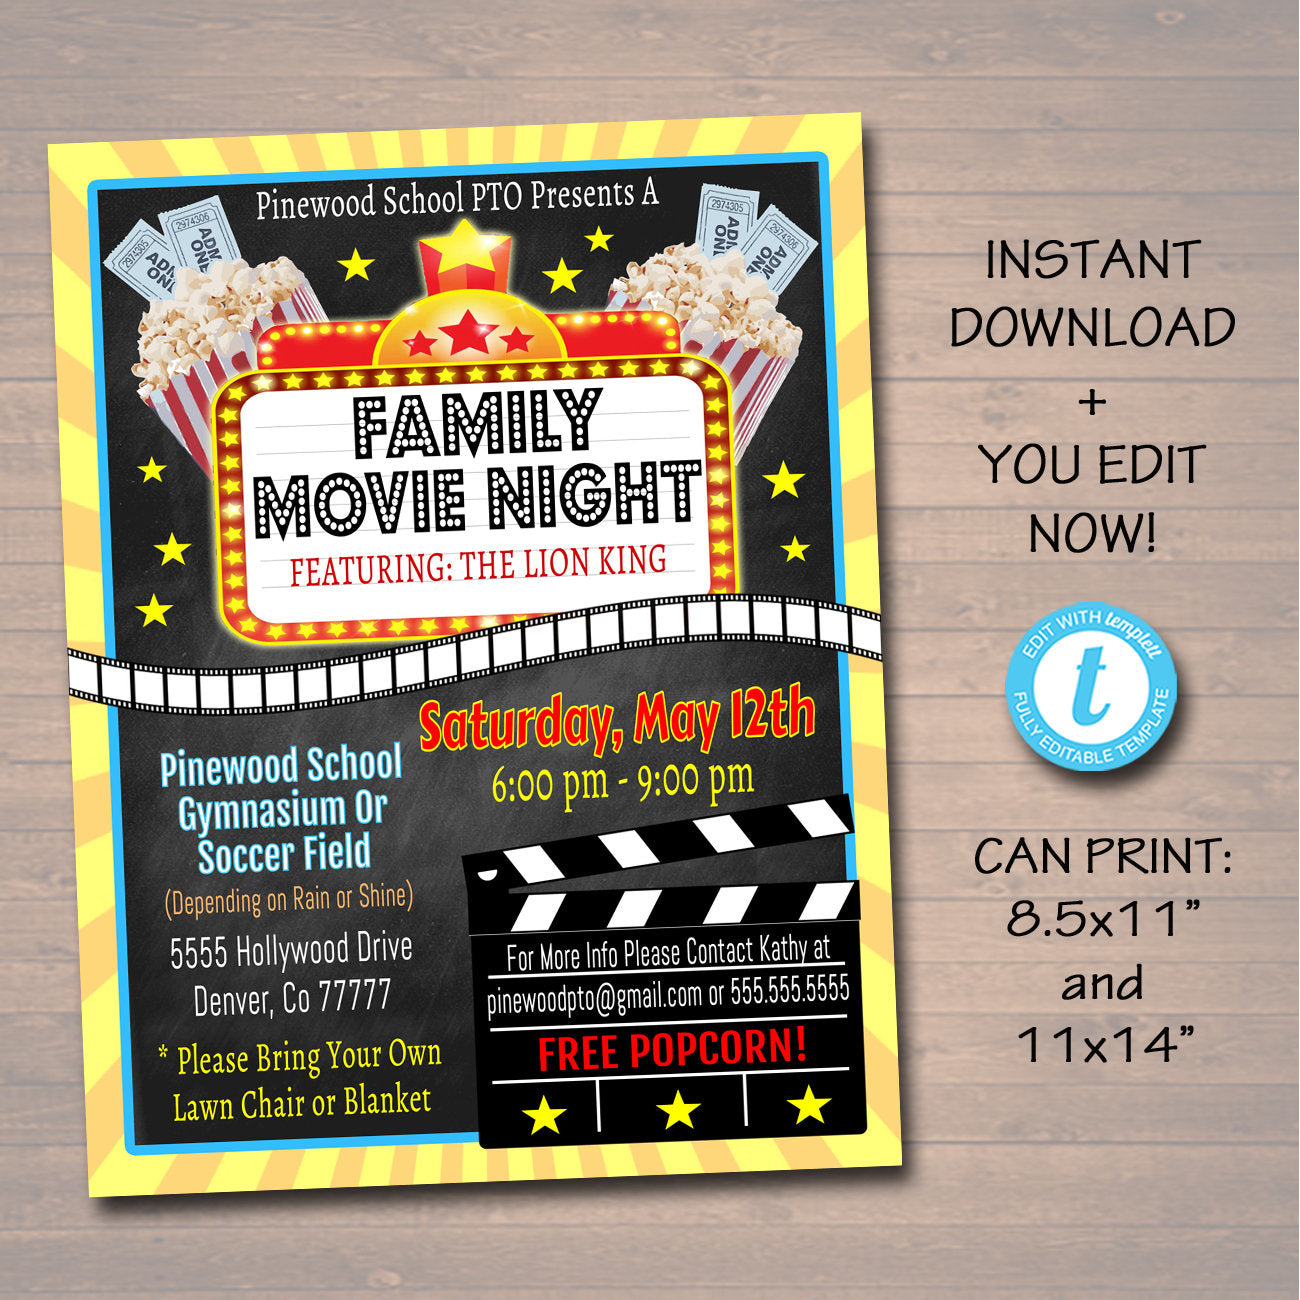 Movie Night Flyer Template from cdn.shopify.com